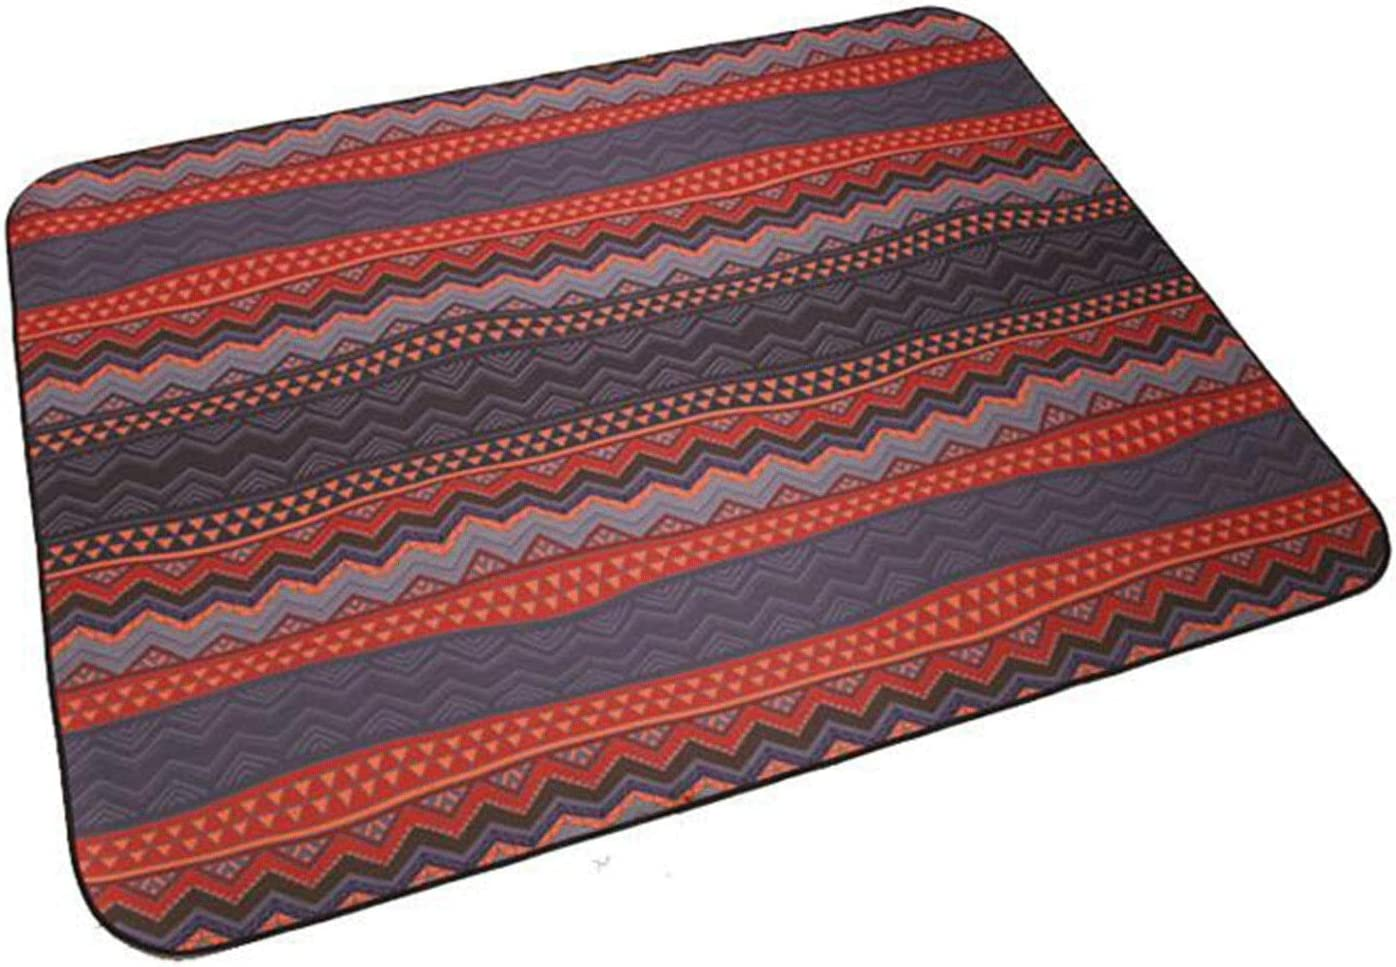 DUOWEI Outdoor Picnic Blanket Extra Sale online shop Folda Large